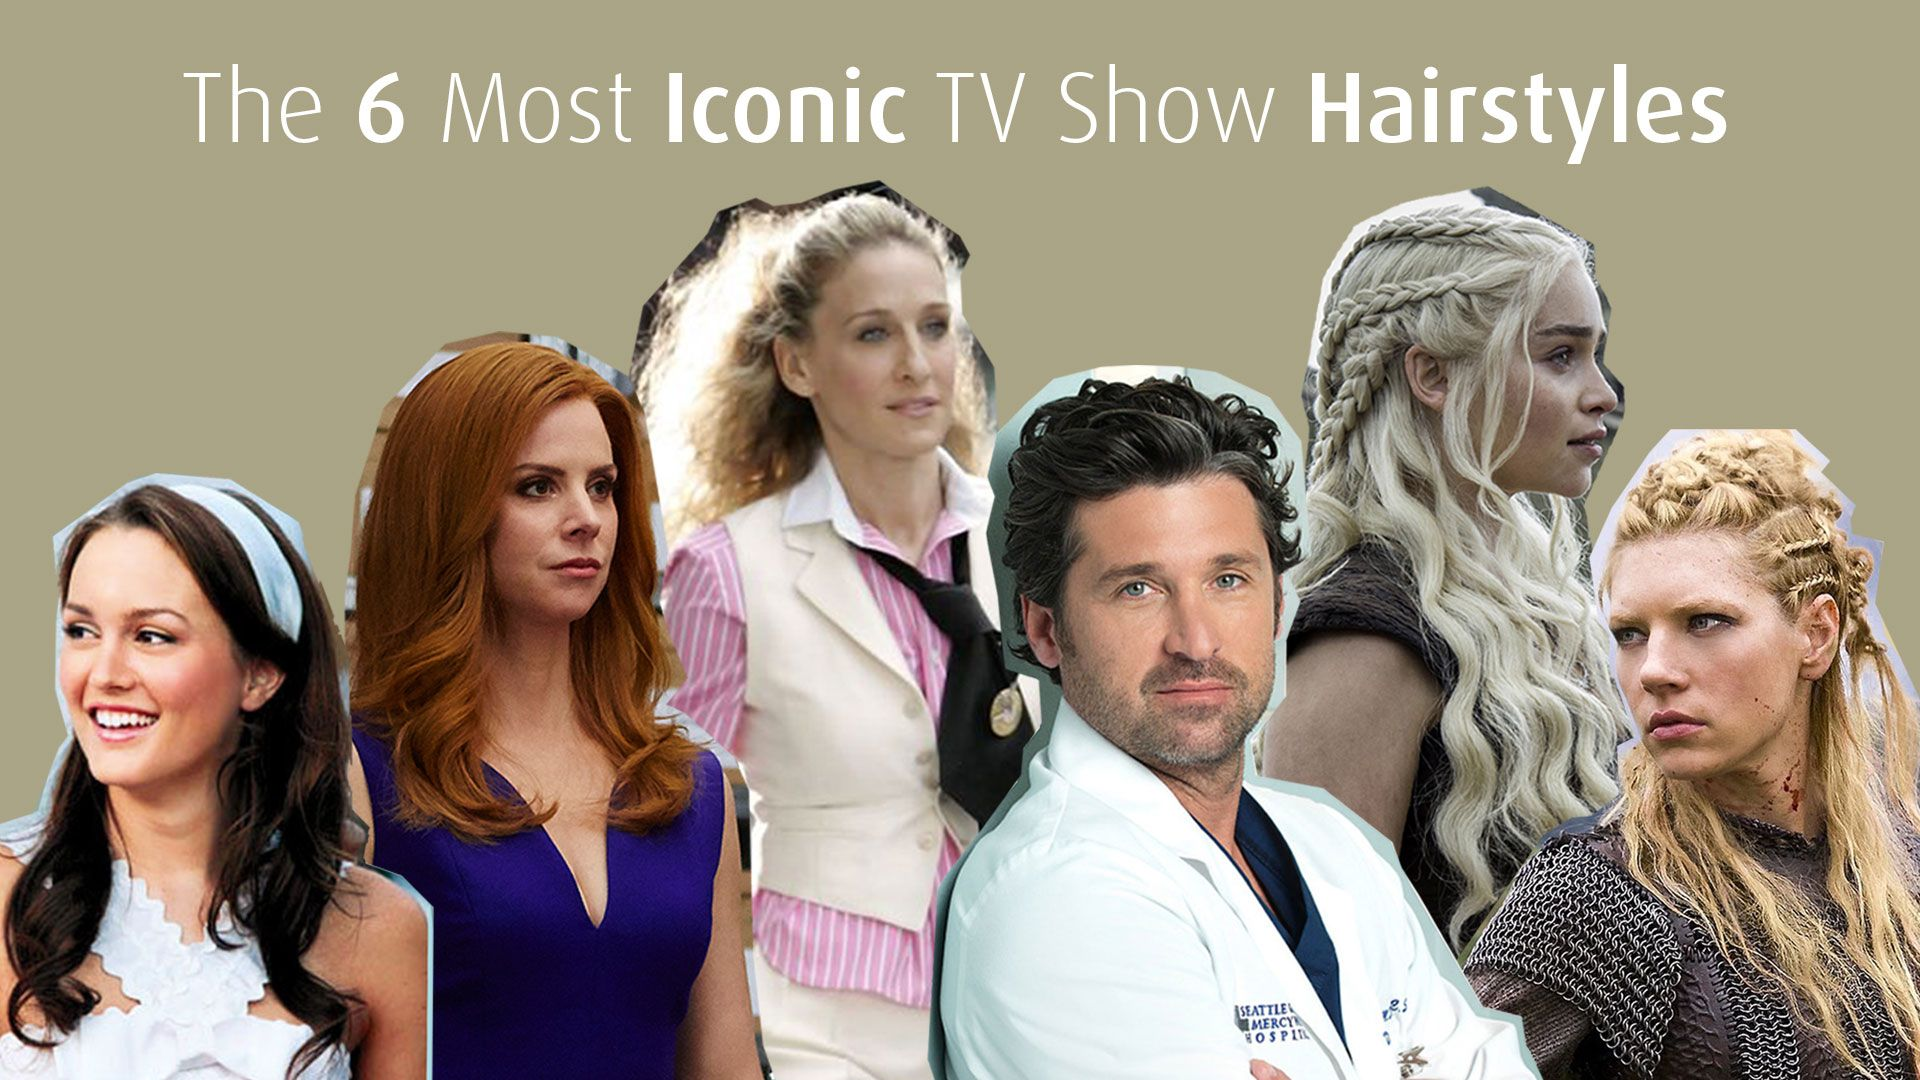 Photoshoot iconic TV show hairstyles - portraits with plain background